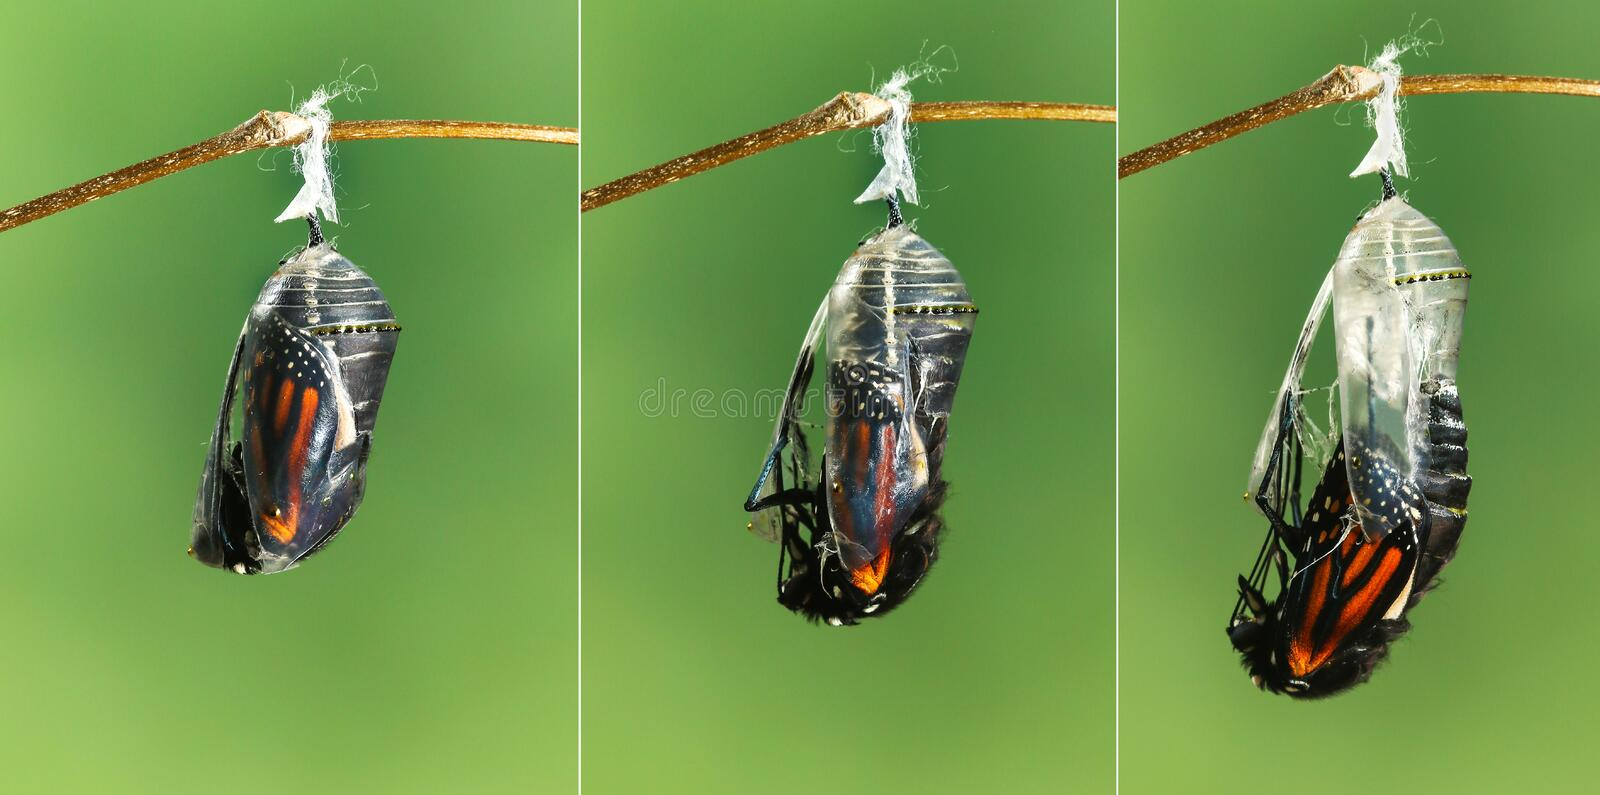 Monarch butterfly emerging from chrysalis to butterfly. Monarch butterfly Danaus plexippus emerging from chrysalis to butterfly stock photos